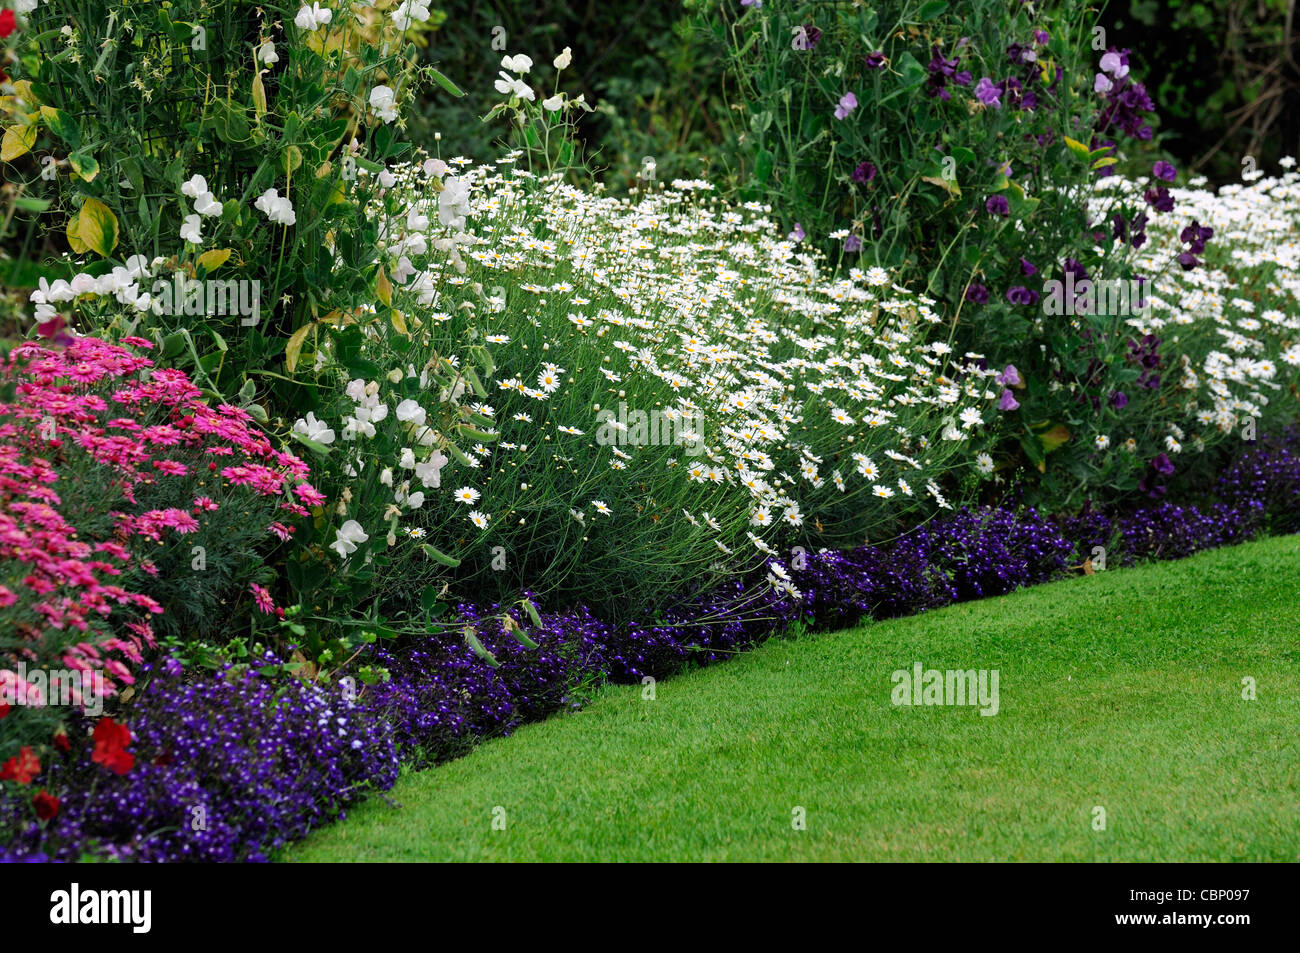 Summer flowering flowers herbaceous border bed flower plant planting summer flowering flowers herbaceous border bed flower plant planting mixed perennials colour color mightylinksfo